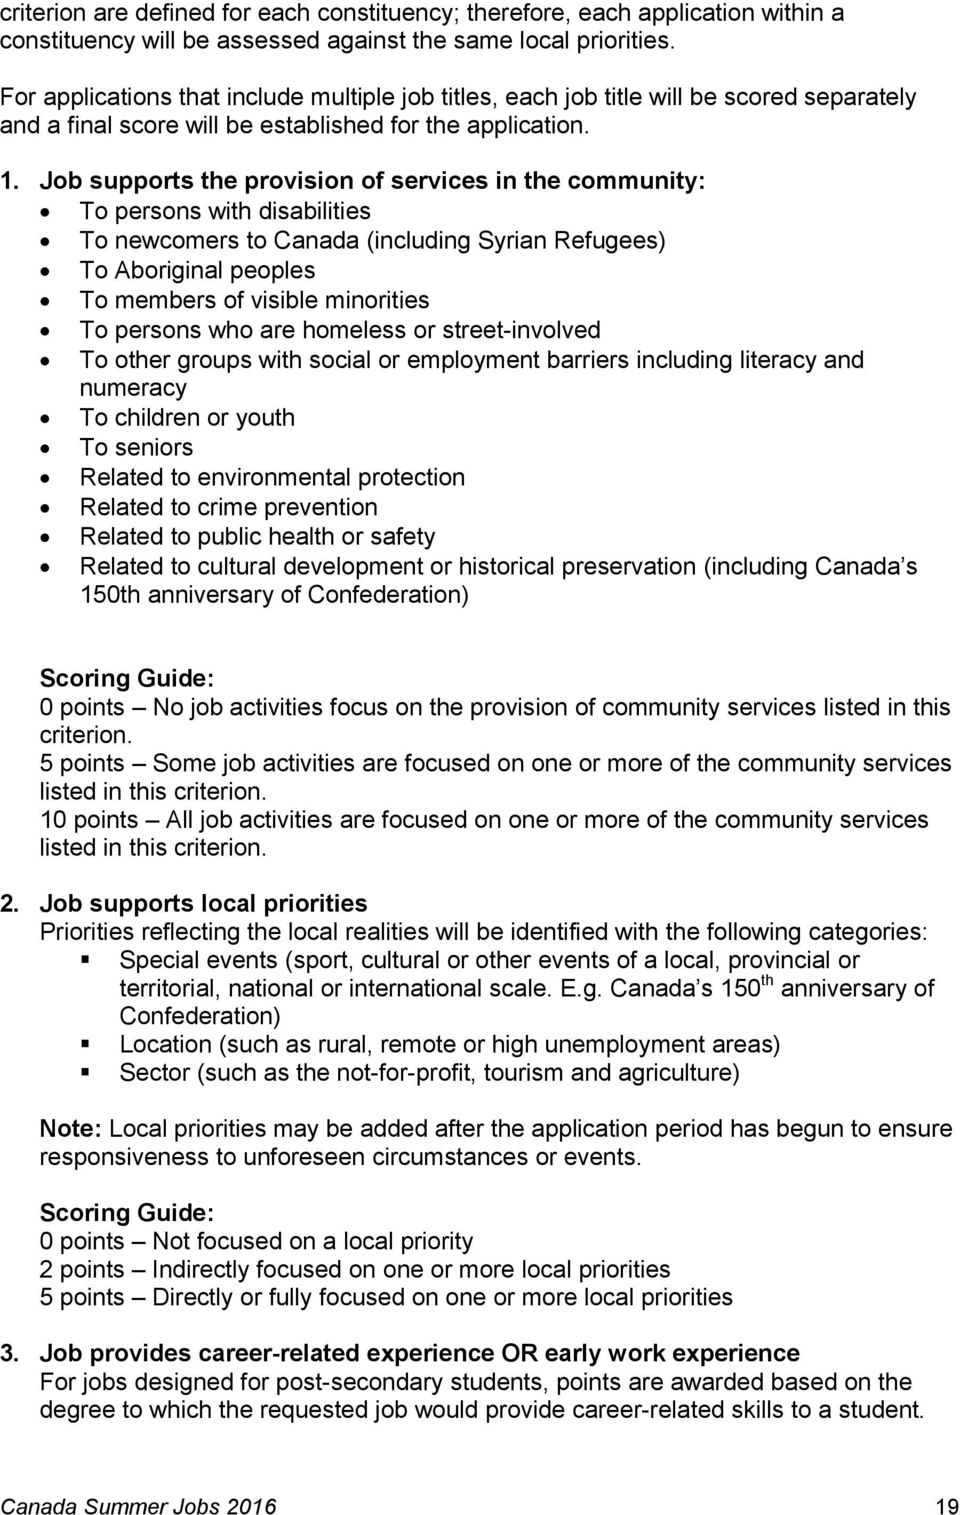 Job supports the provision of services in the community: To persons with disabilities To newcomers to Canada (including Syrian Refugees) To Aboriginal peoples To members of visible minorities To